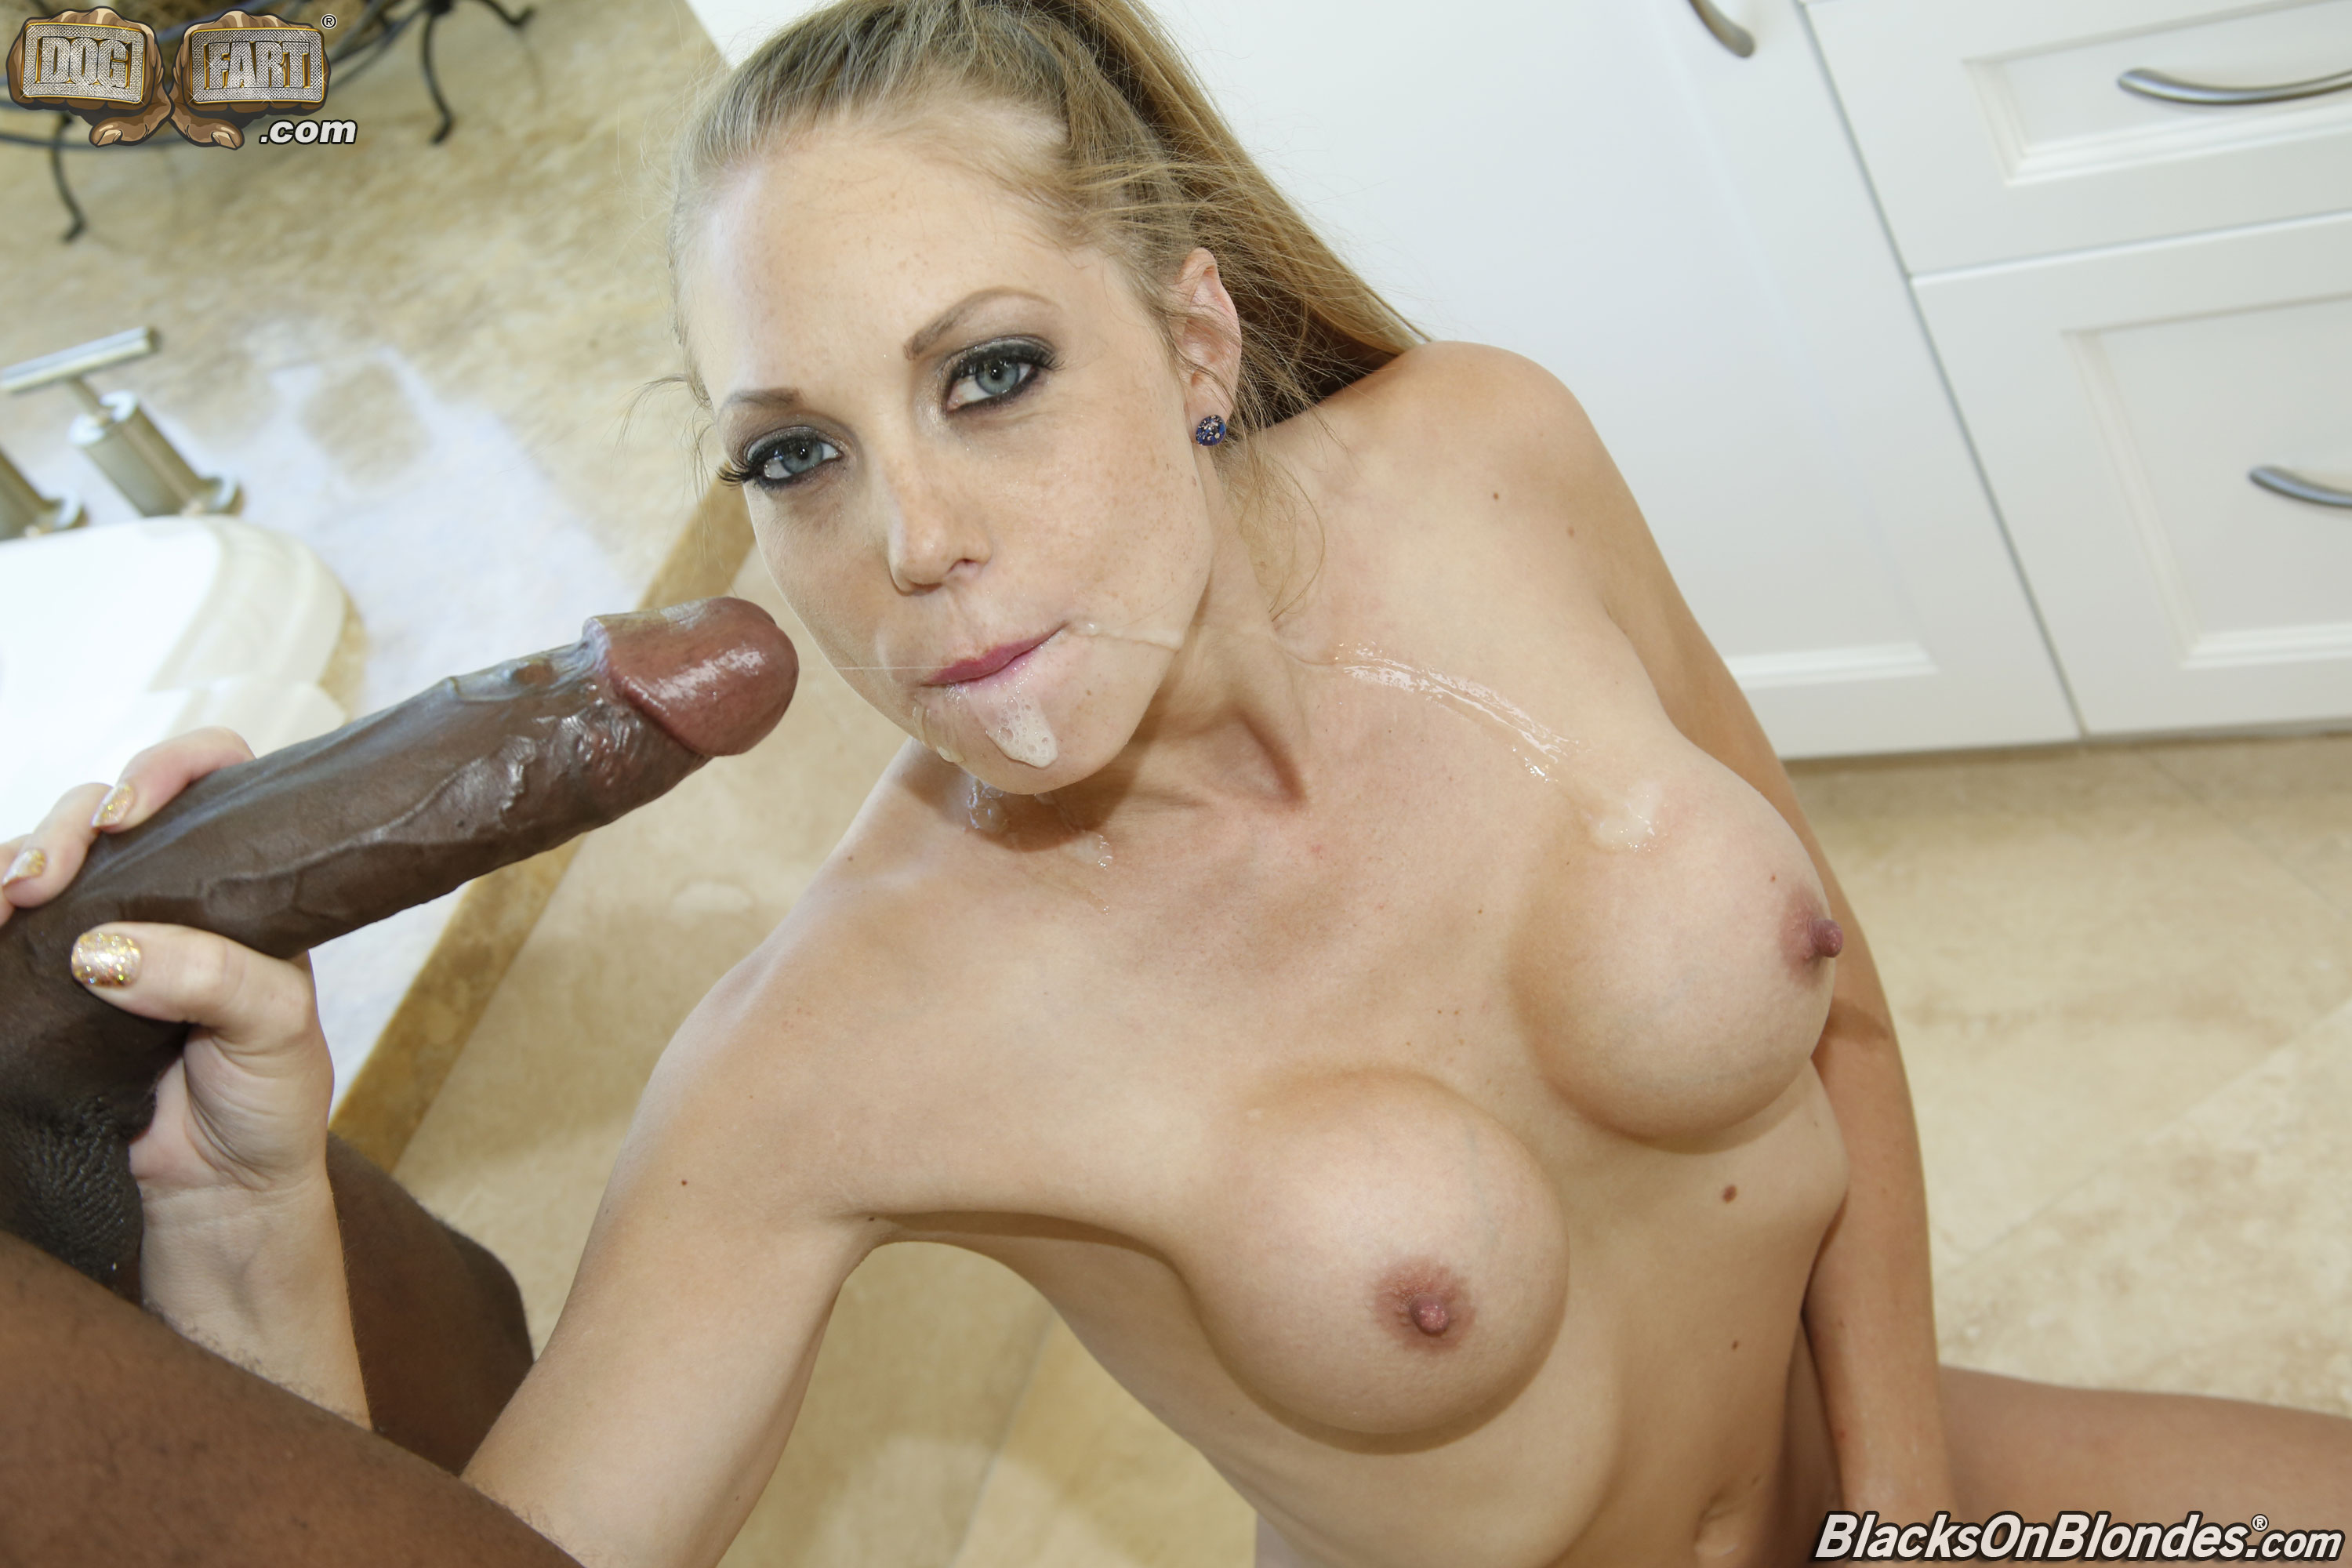 Blacks on blondes tube share